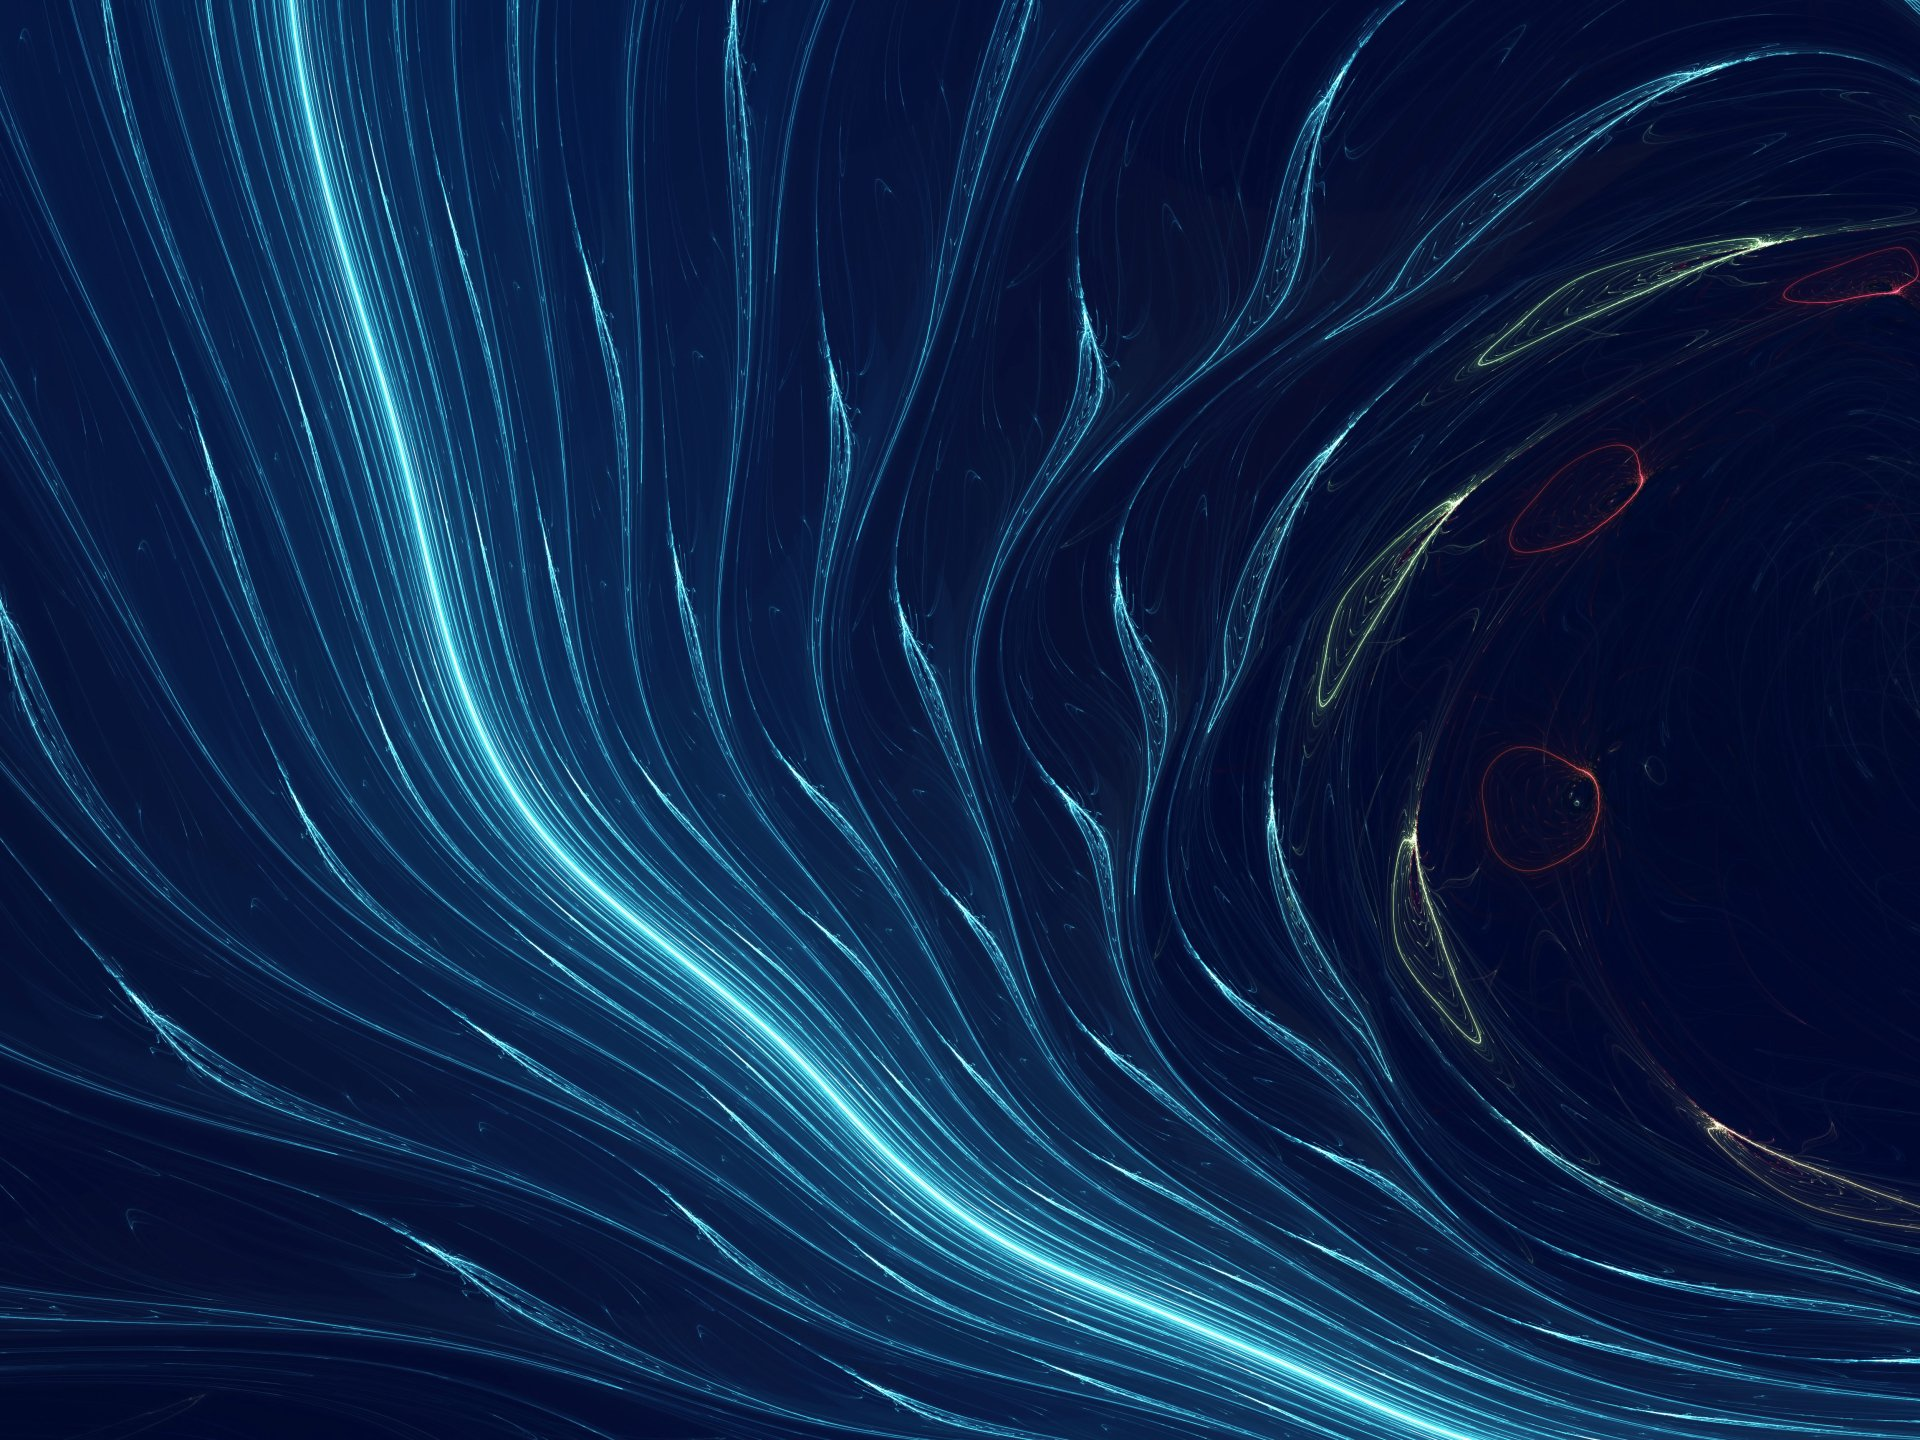 Abstract - Blue  Shapes Wave Wallpaper